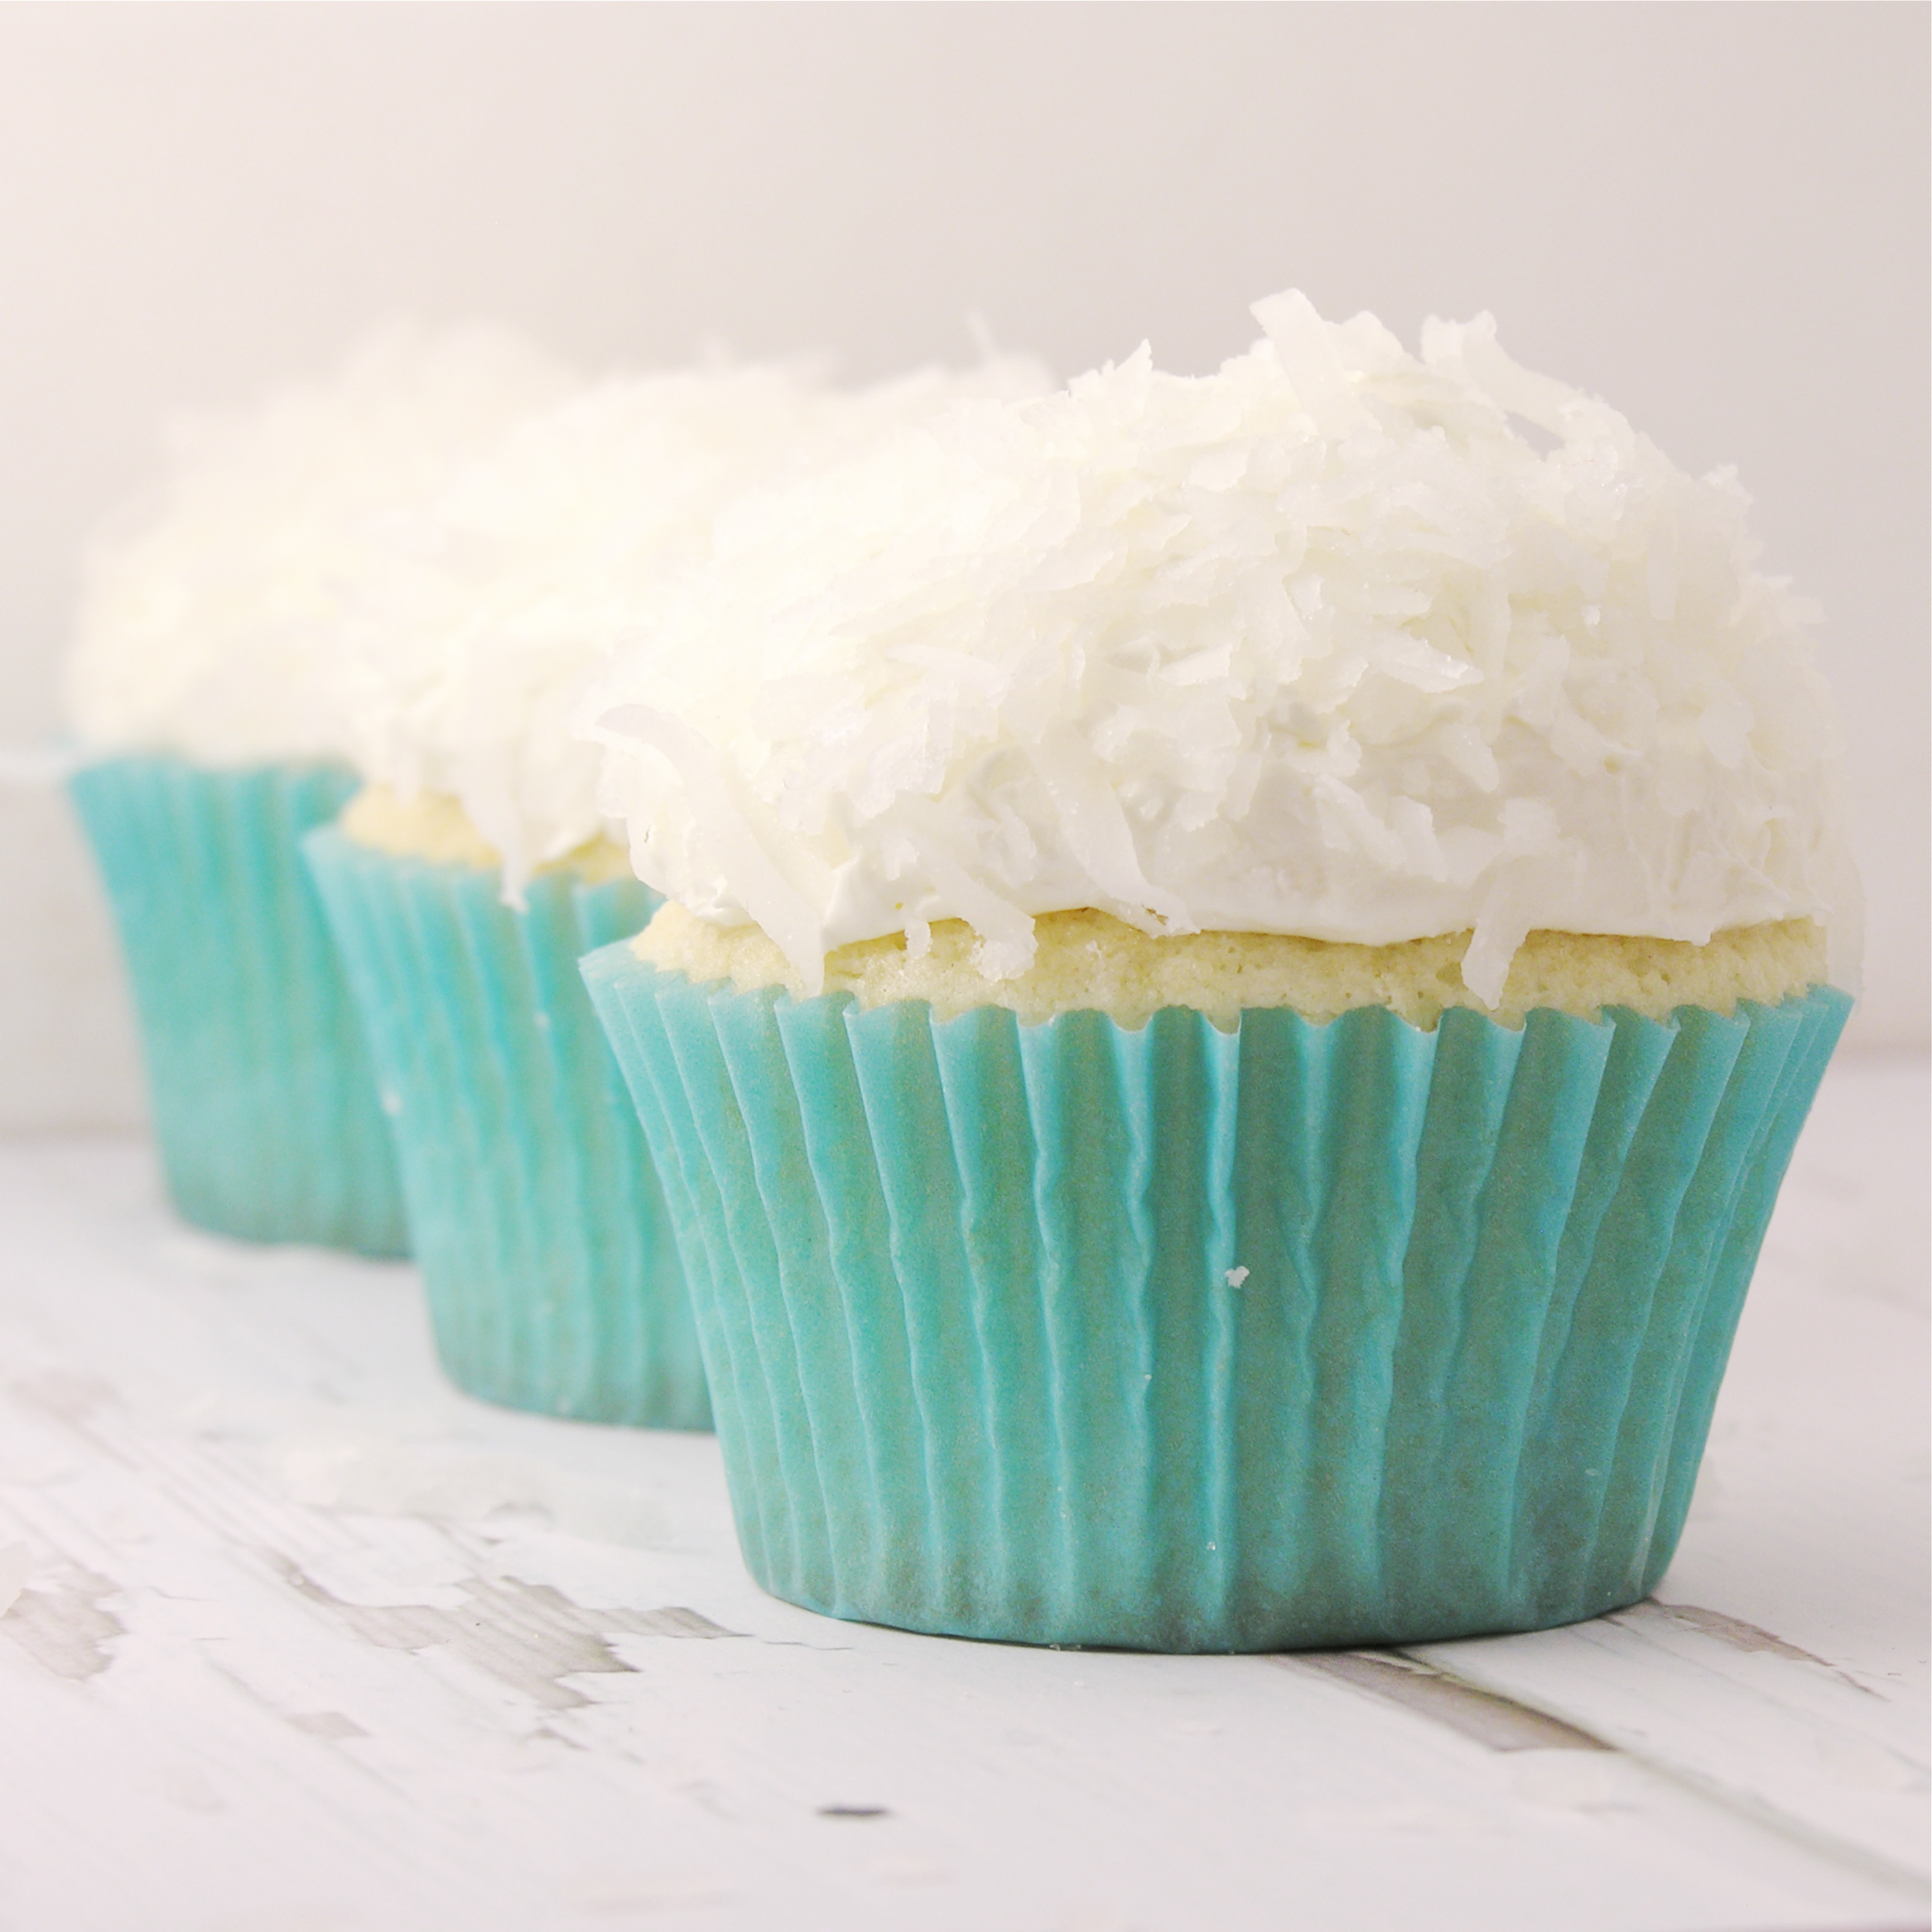 Coconut Cupcakes | eASYbAKED